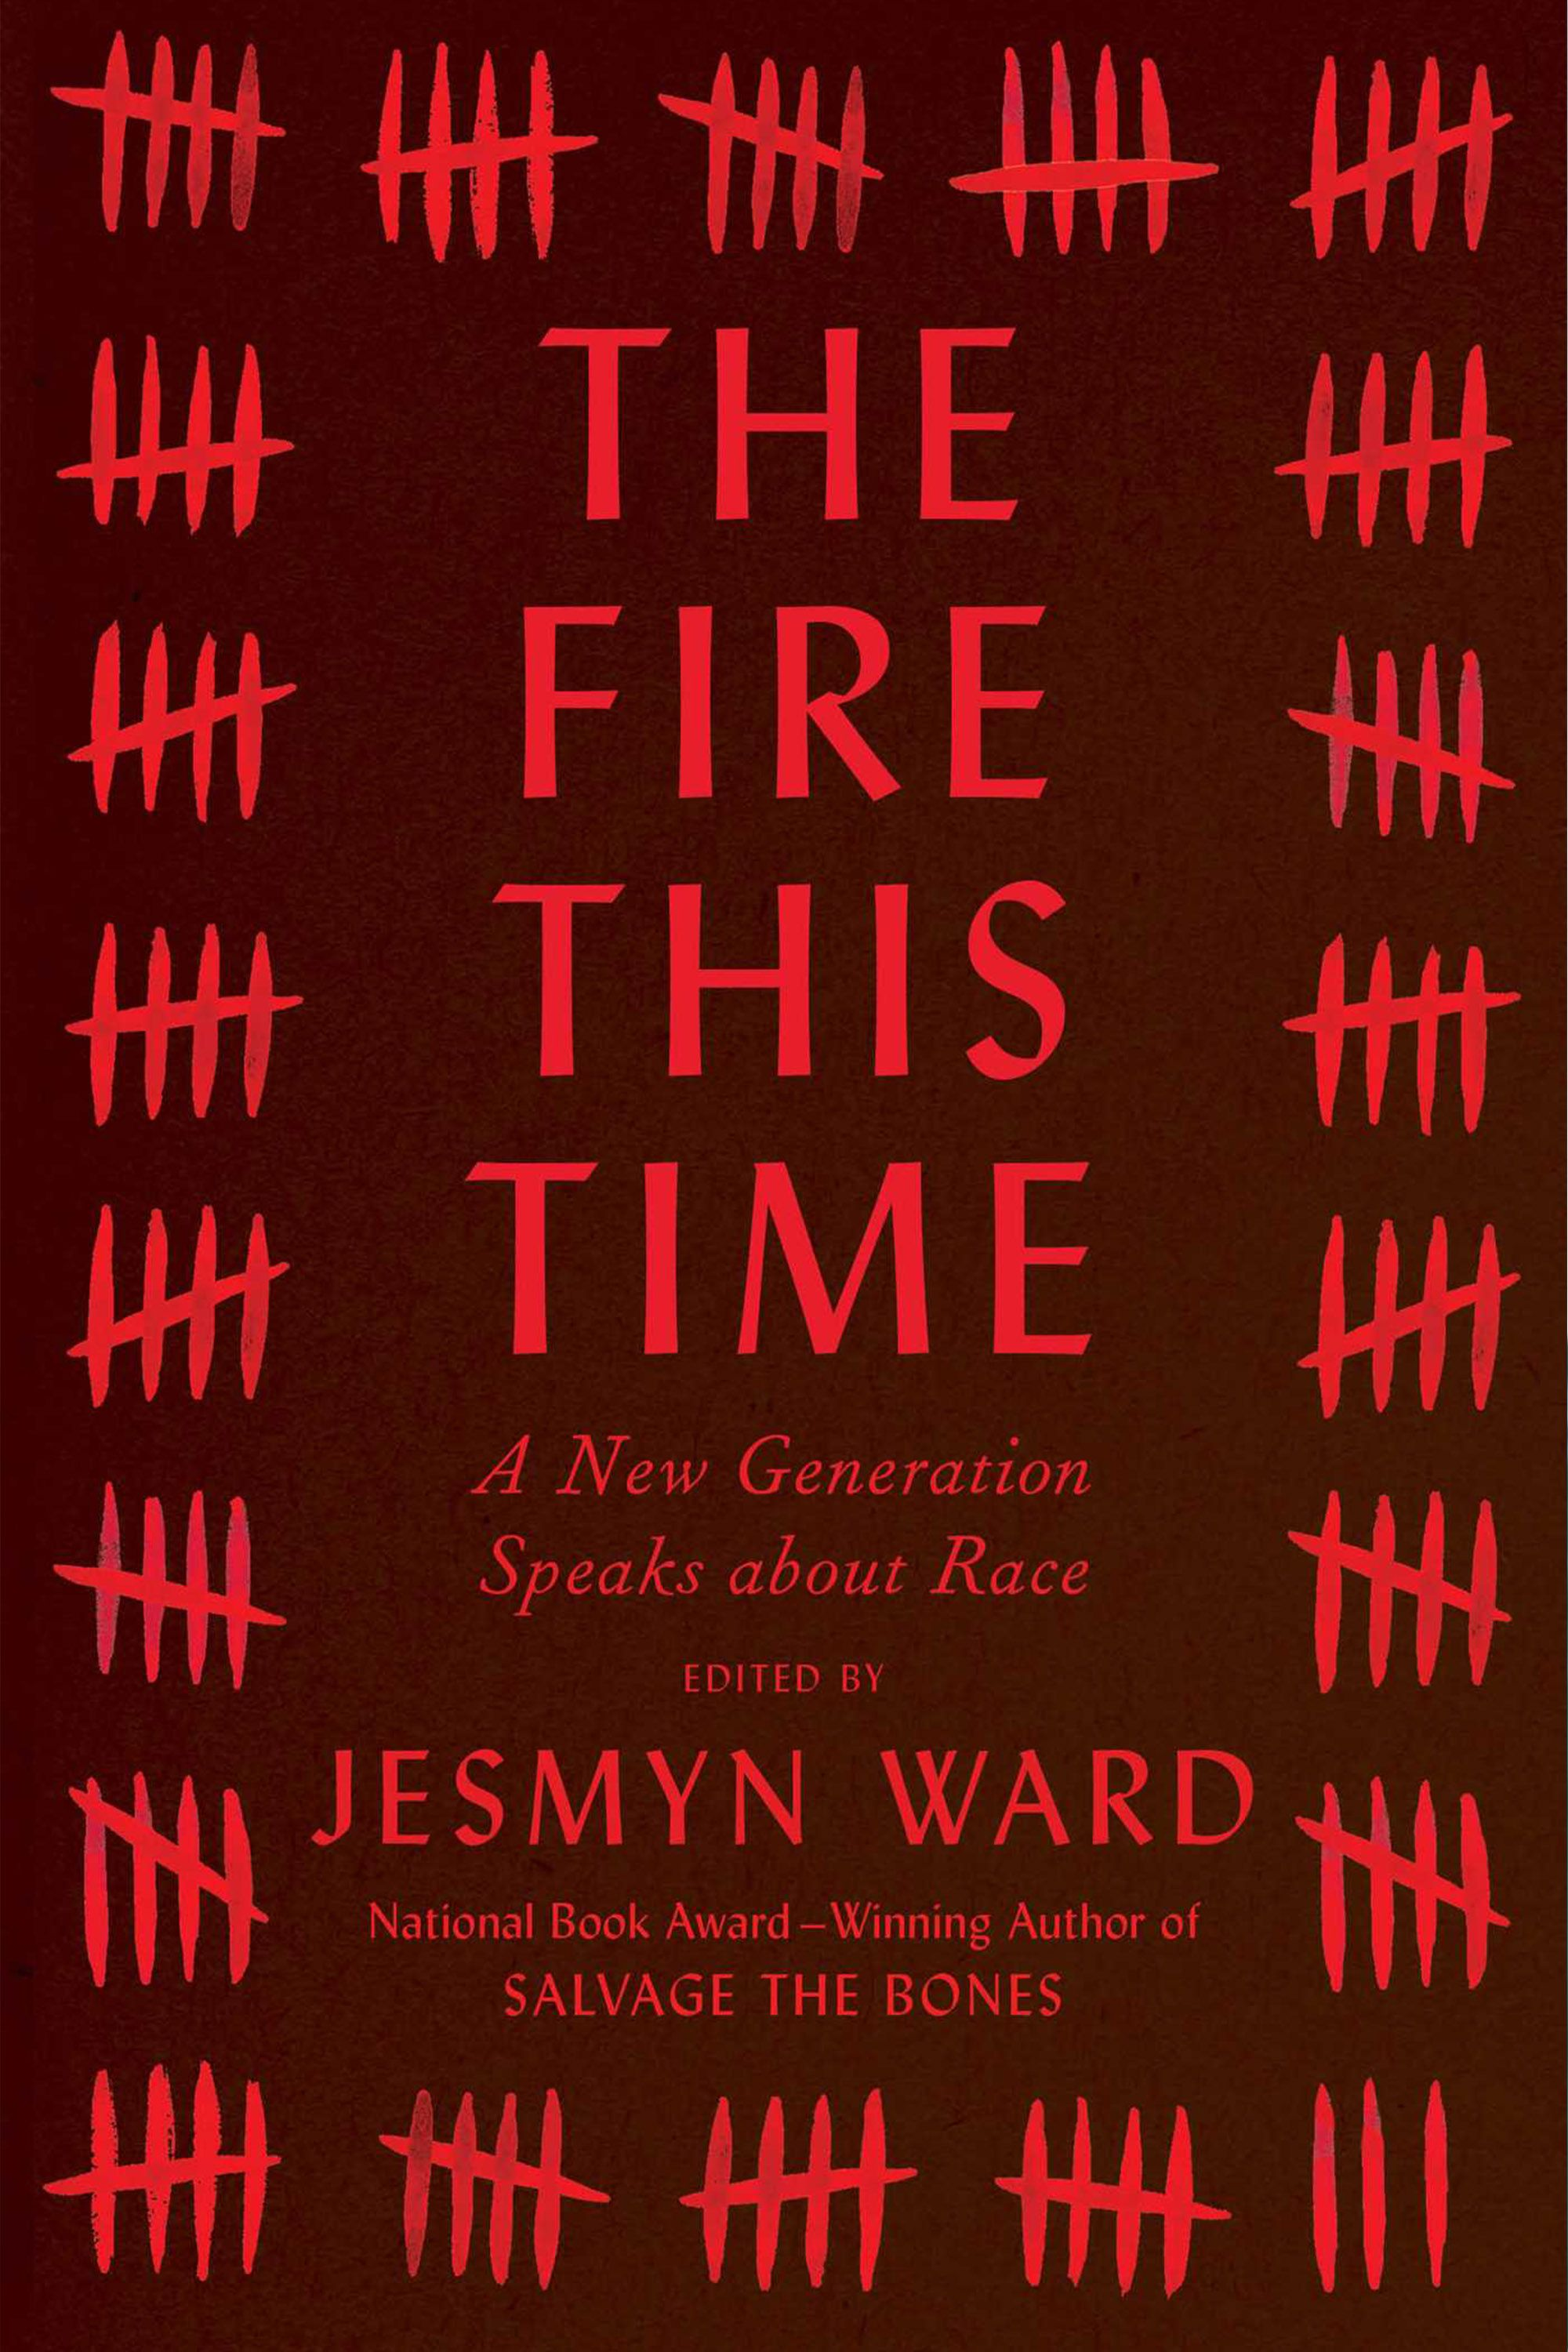 """<p>Jesmyn Ward's memoir about the lost lives of young men in her Mississippi town, <em><a href=""""https://www.amazon.com/Men-We-Reaped-Jesmyn-Ward-ebook/dp/B00CIR97T8"""">Men We Reaped</a></em>, explored the consequences of racism and economic disadvantage. Now she has brought together 18 writers to pen their thoughts on race, in a kind of generational sequel to James Baldwin's book <em>The Fire Next Time</em>. It's necessary reading. (<a href=""""https://www.amazon.com/Fire-This-Time-Generation-Speaks/dp/1501126342"""">Scribner</a>, August 2)</p>"""